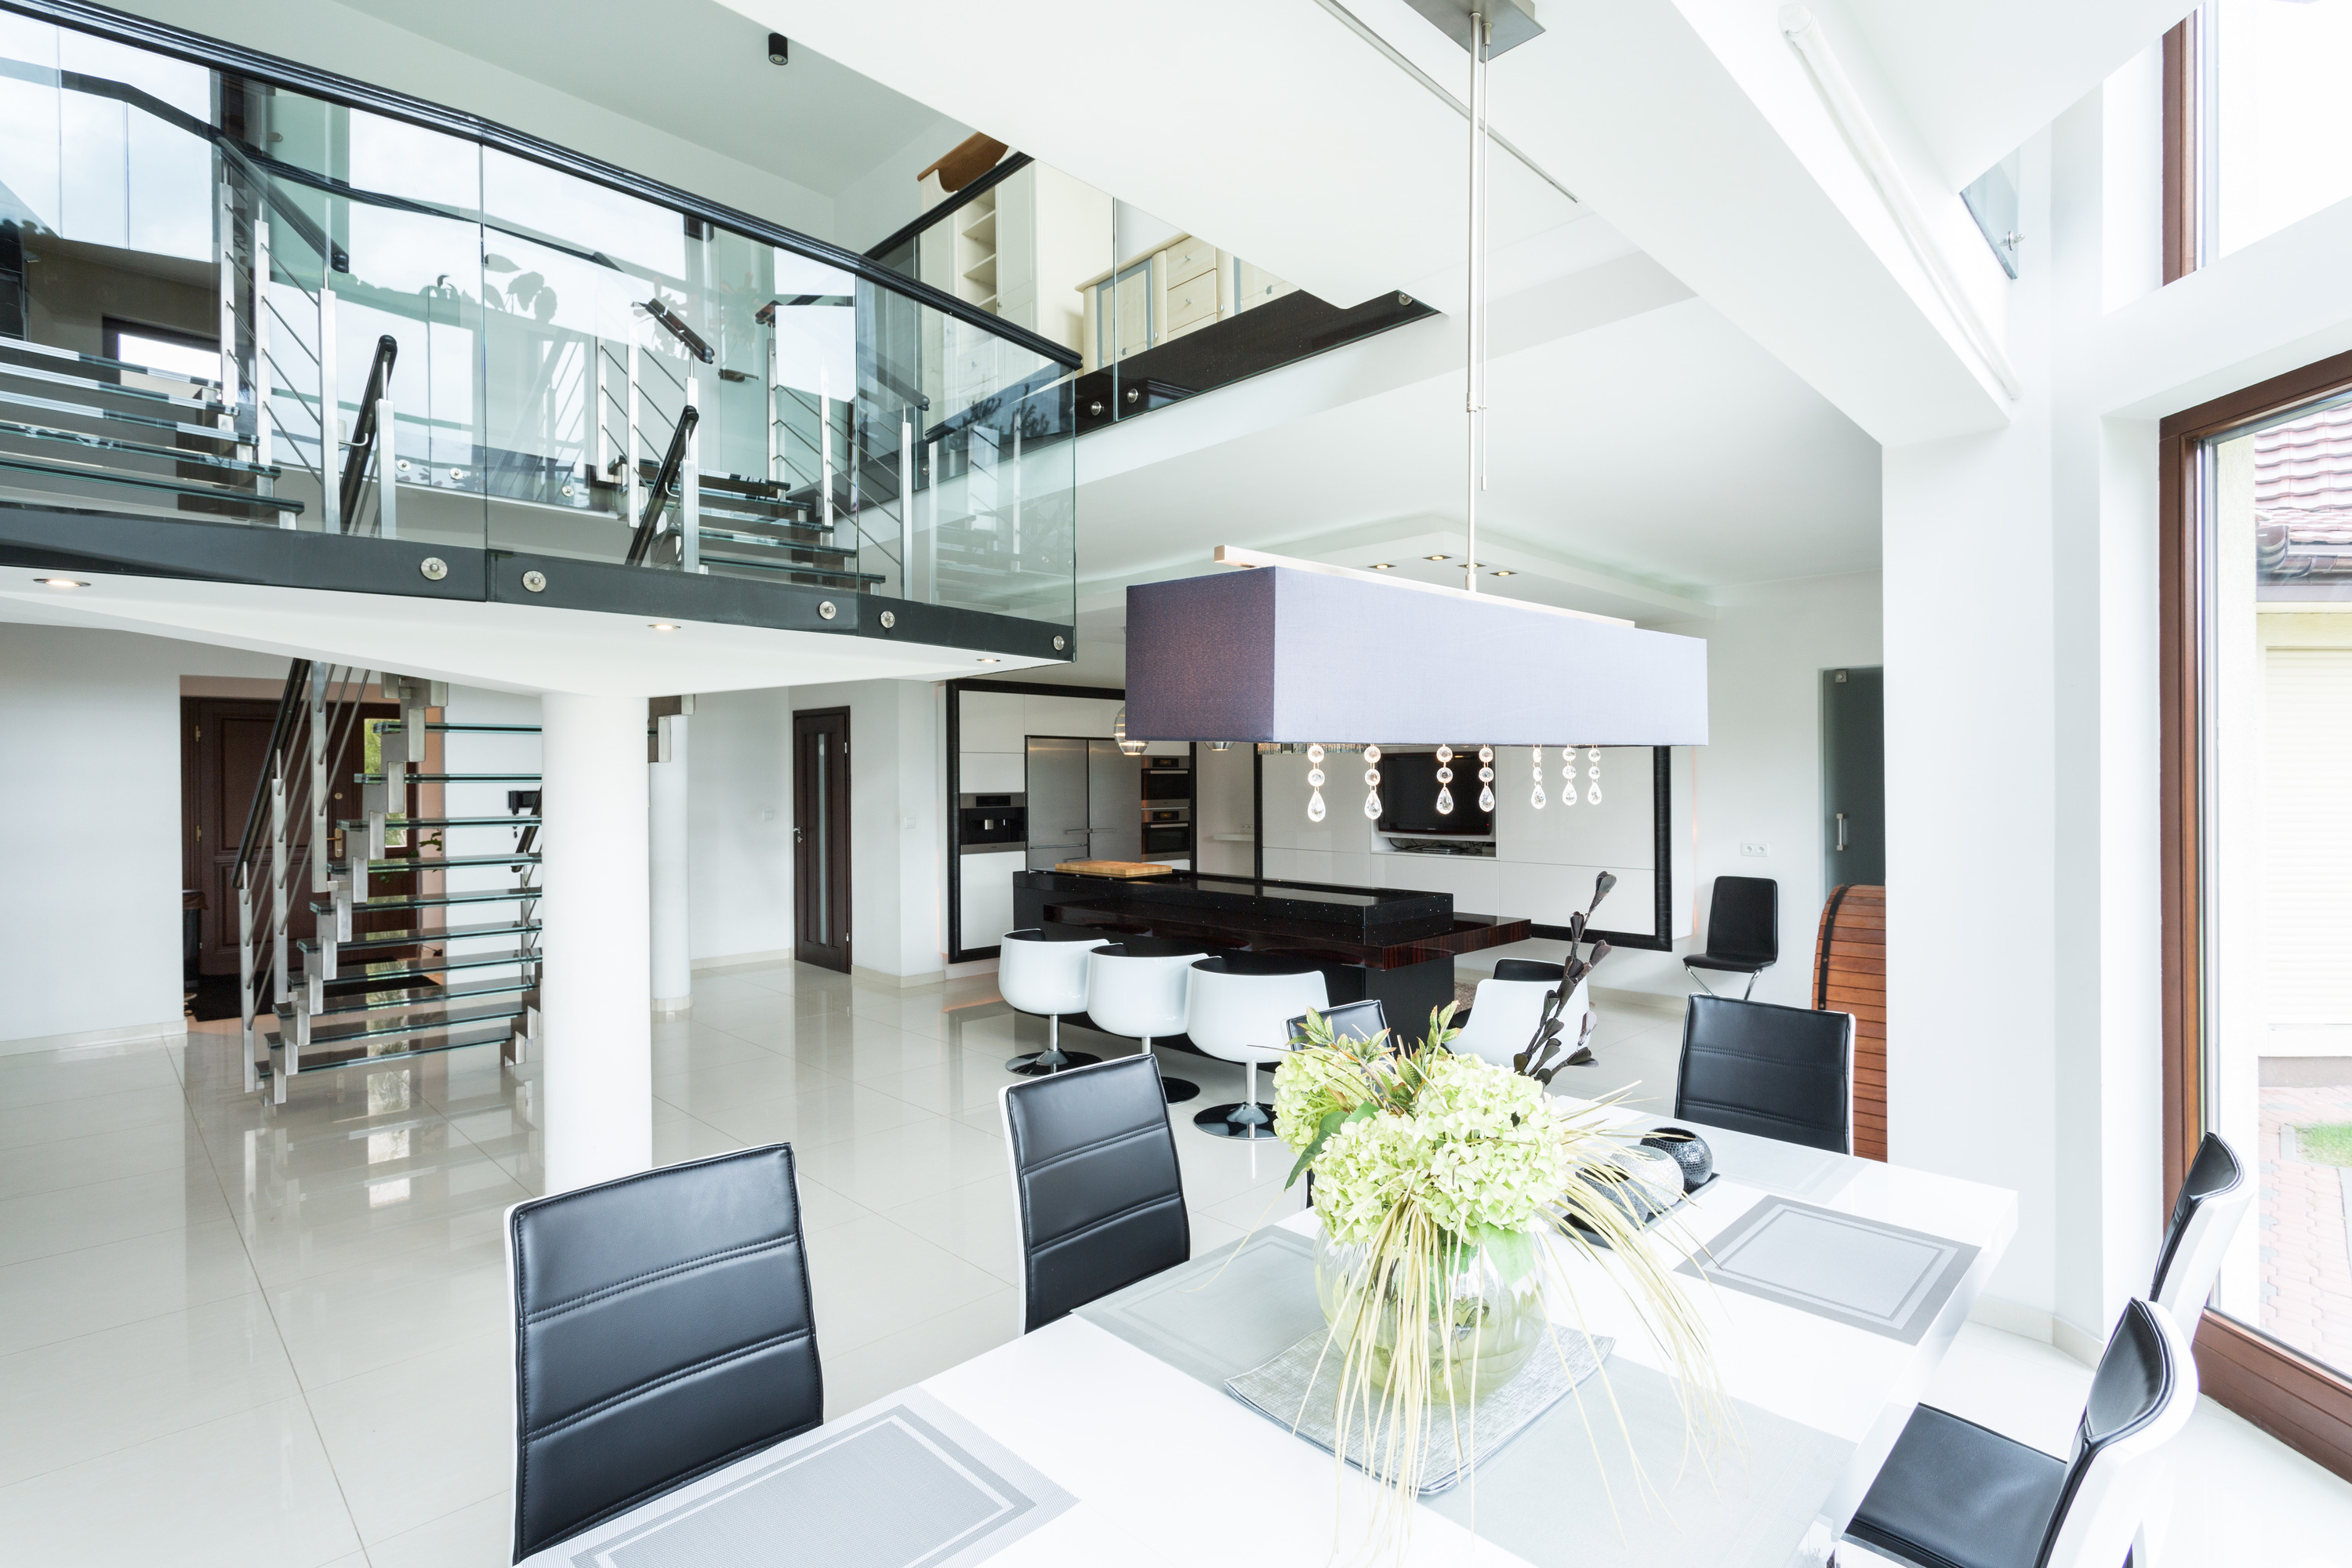 House design valuation - Modern Dining Room In Property